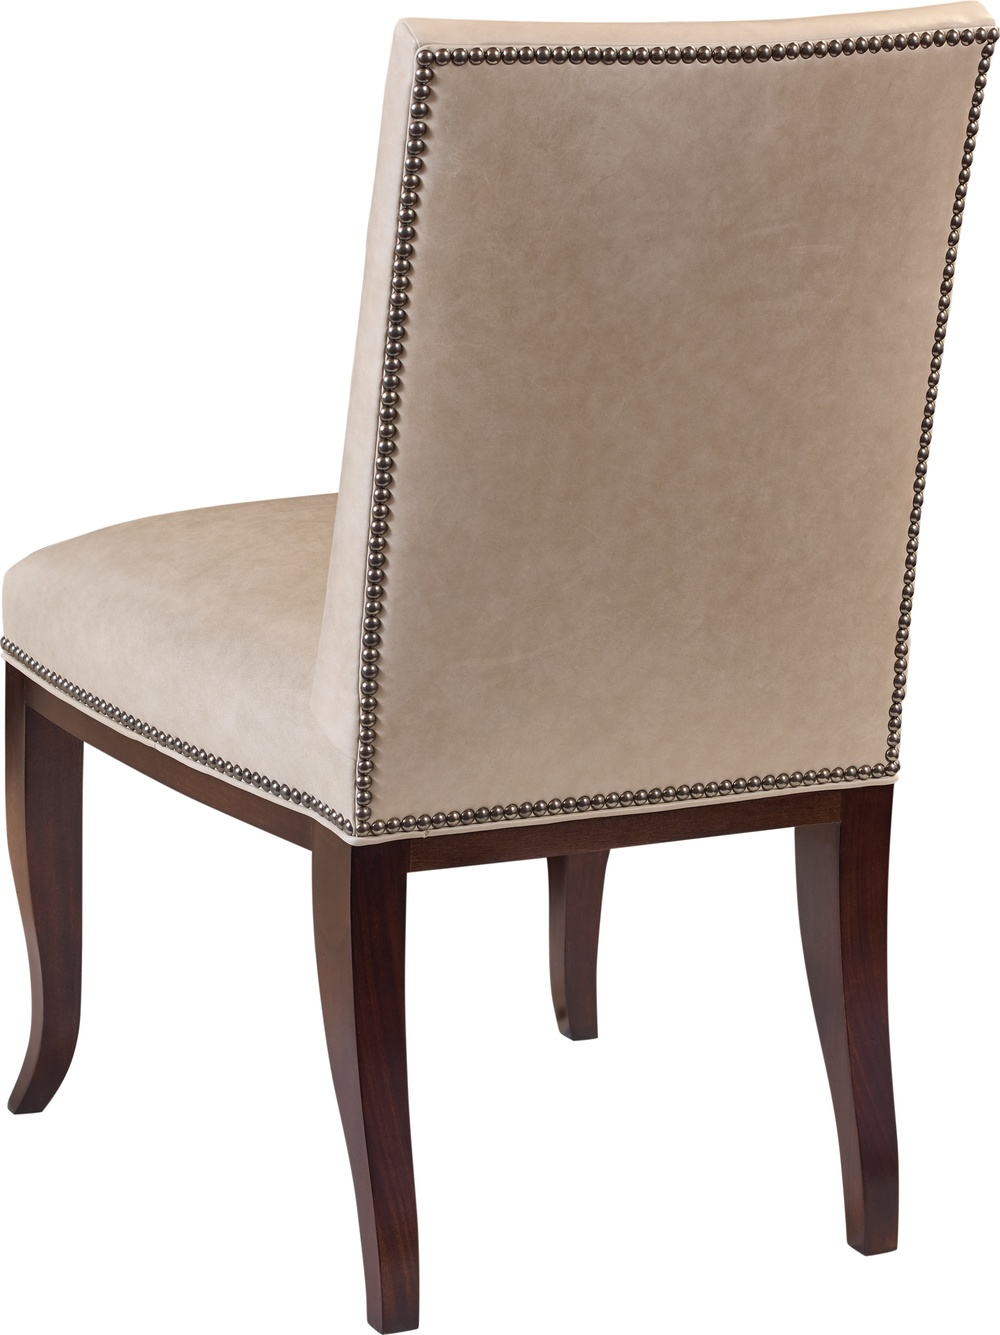 Hickory Chair - Handler Side Chair